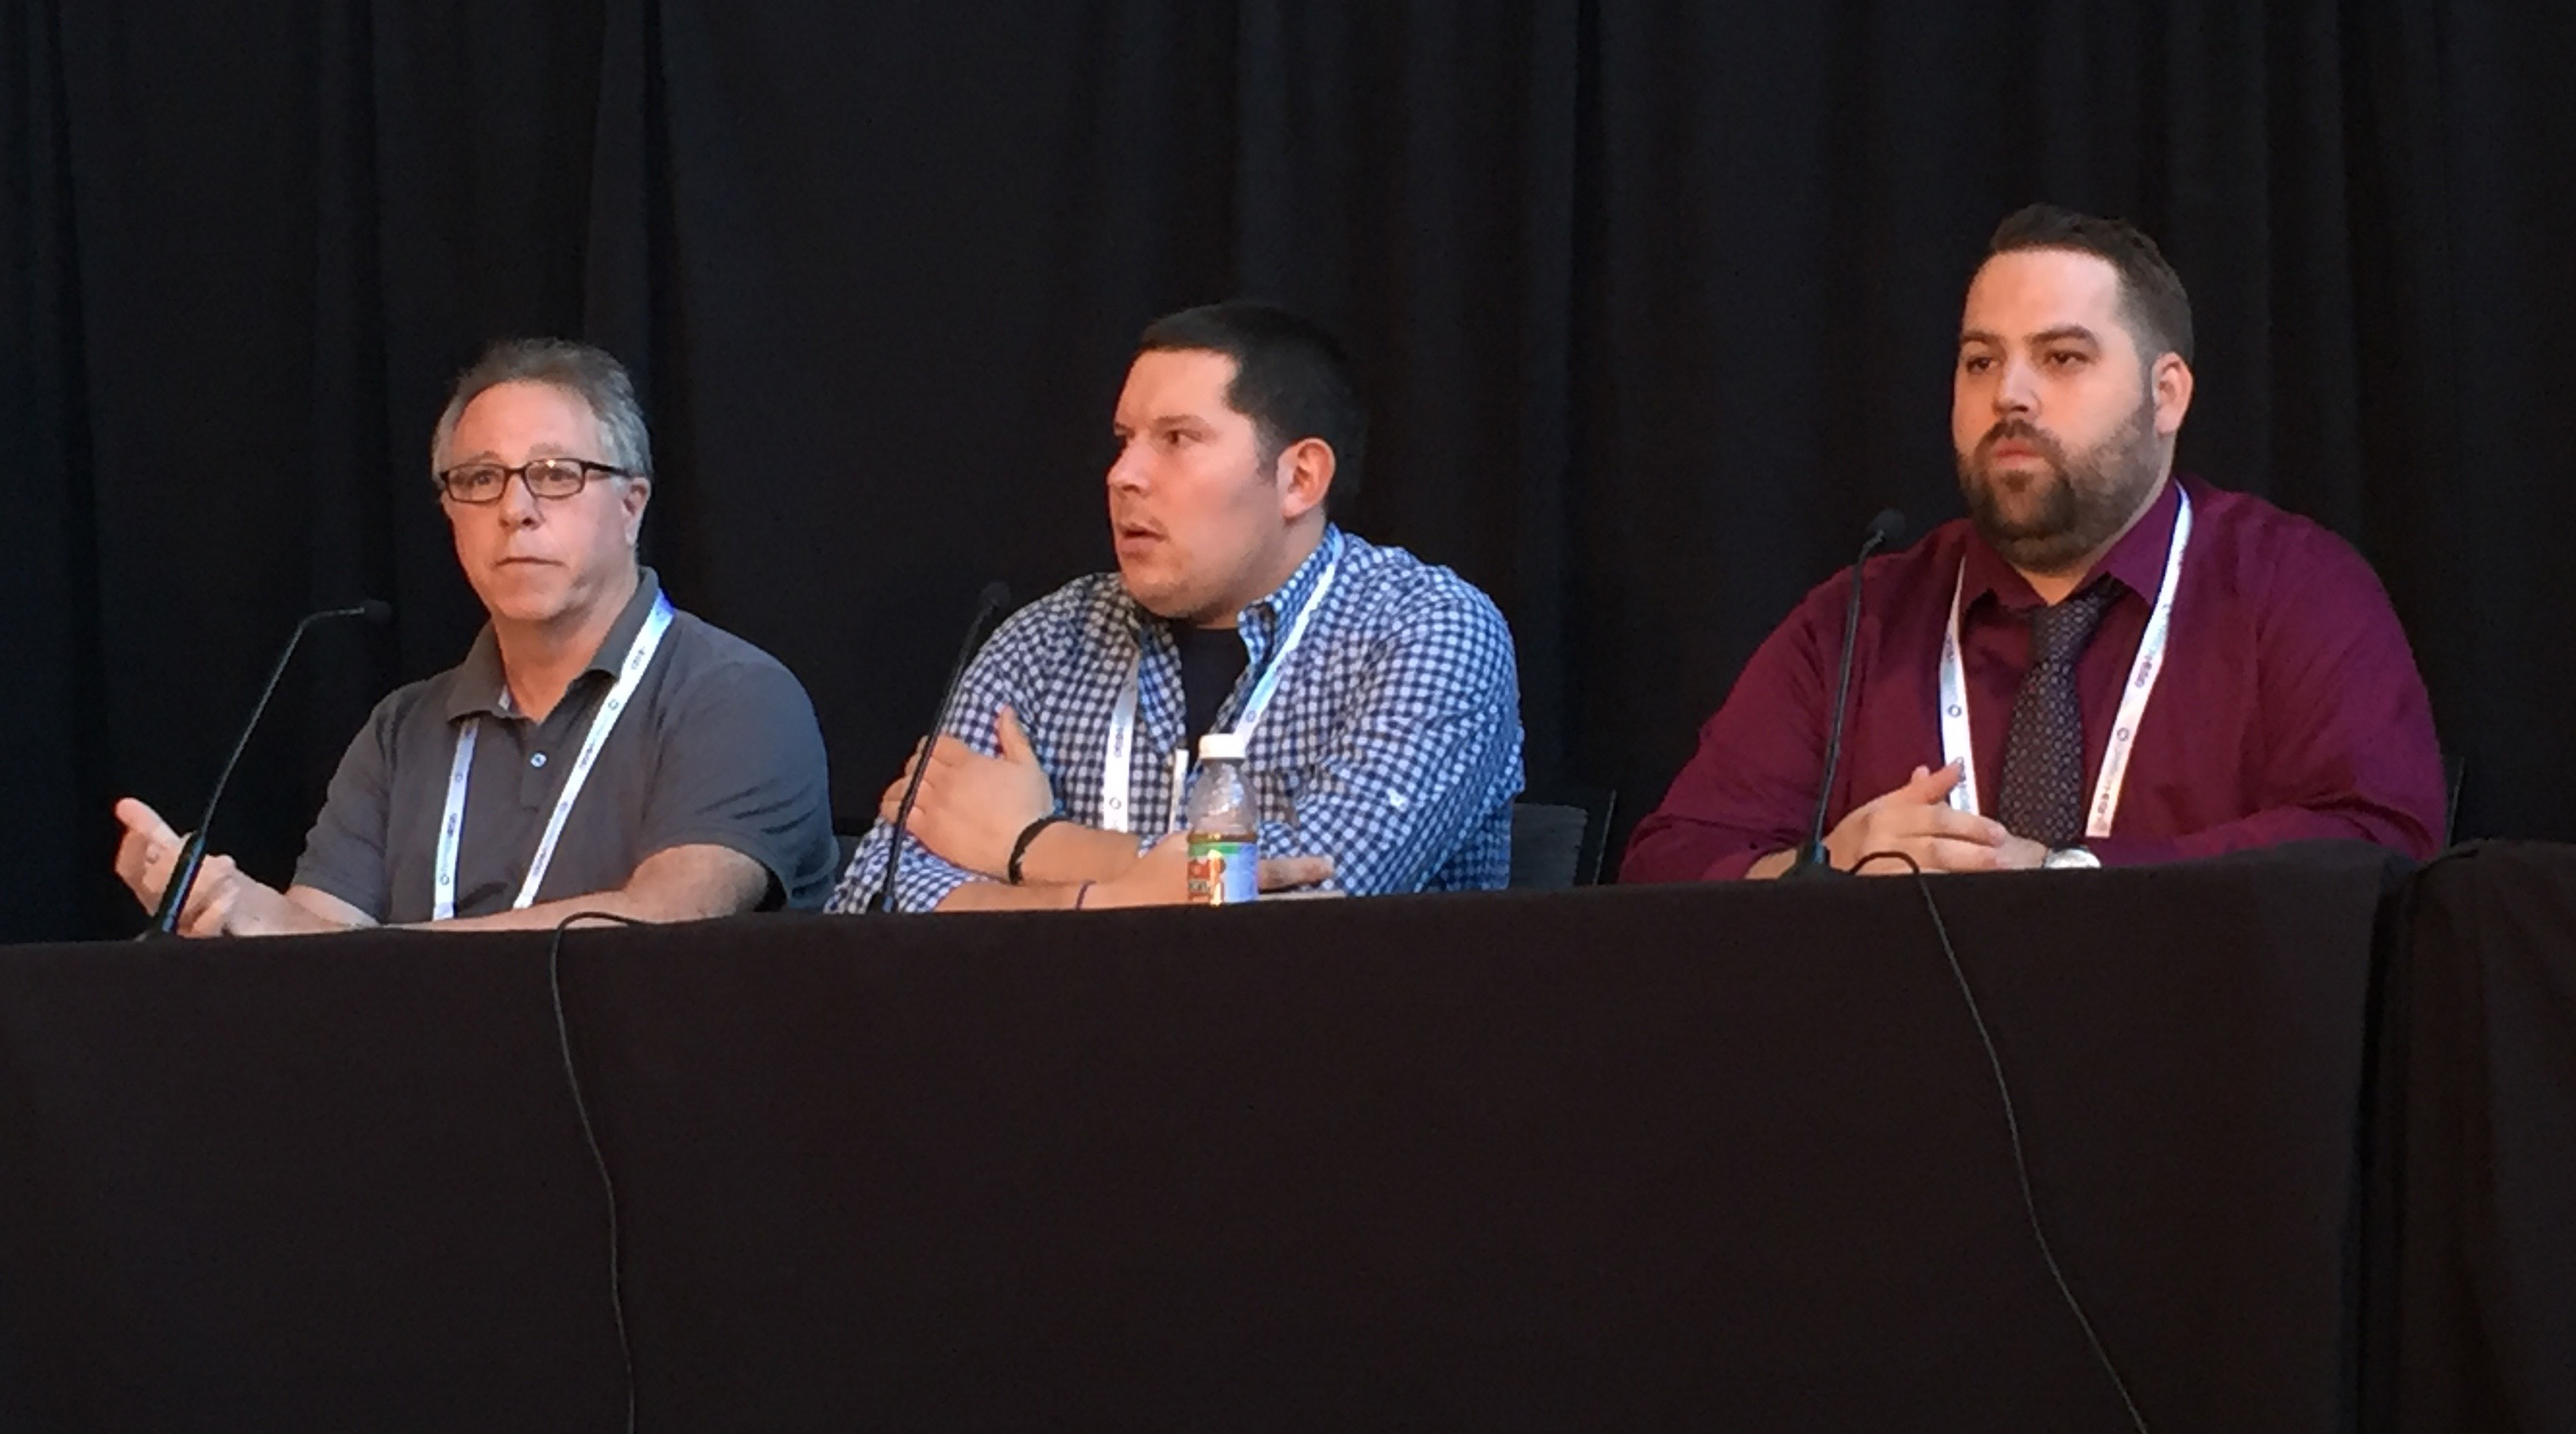 Madison Square Garden's Marc Bauman, the Philadelphia Union's Carl Mandell, and the Philadelphia Phillies' Sean Rainey participate in a panel on production strategies for entertaining fans in-venue.